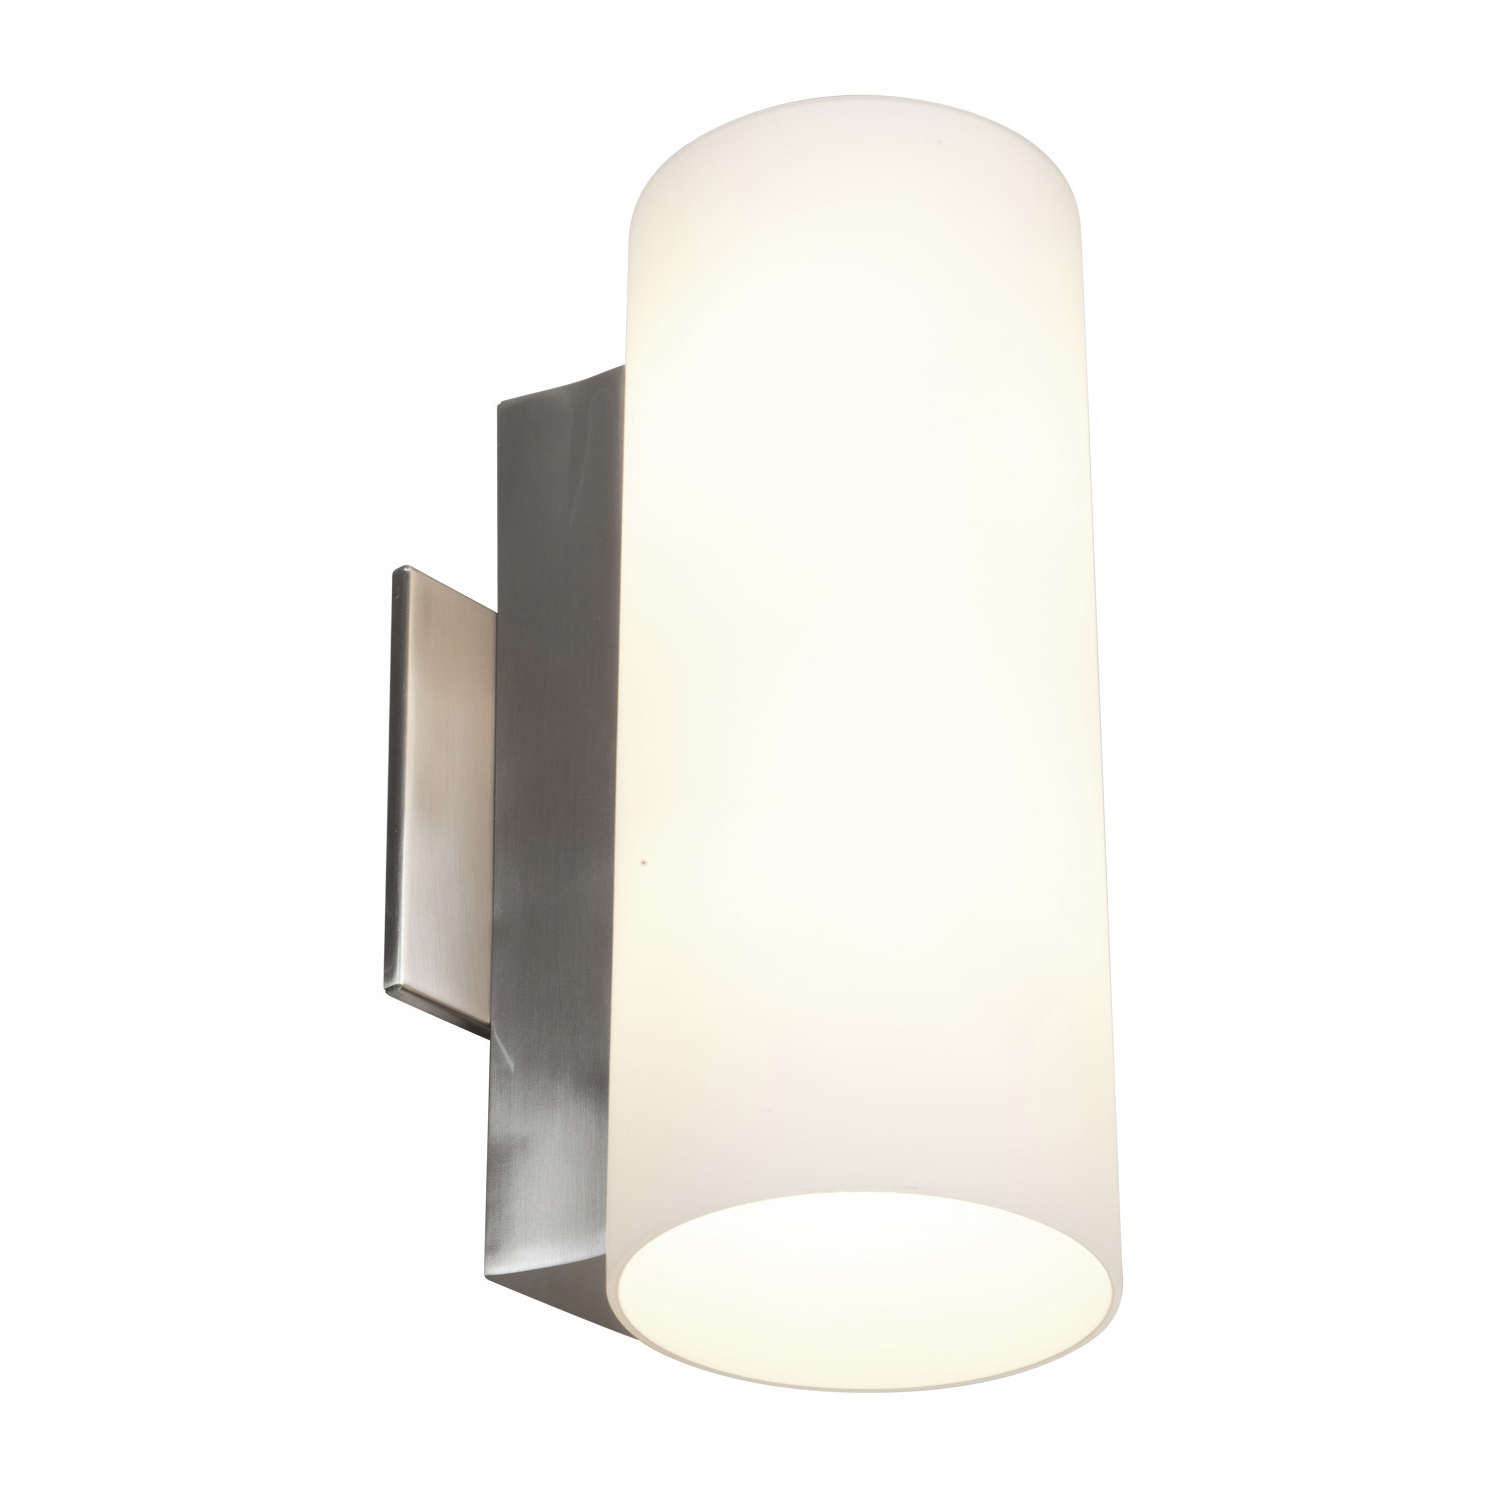 Wall Light Plug In Plug In Wall Light Fixtures Decorating Home With The